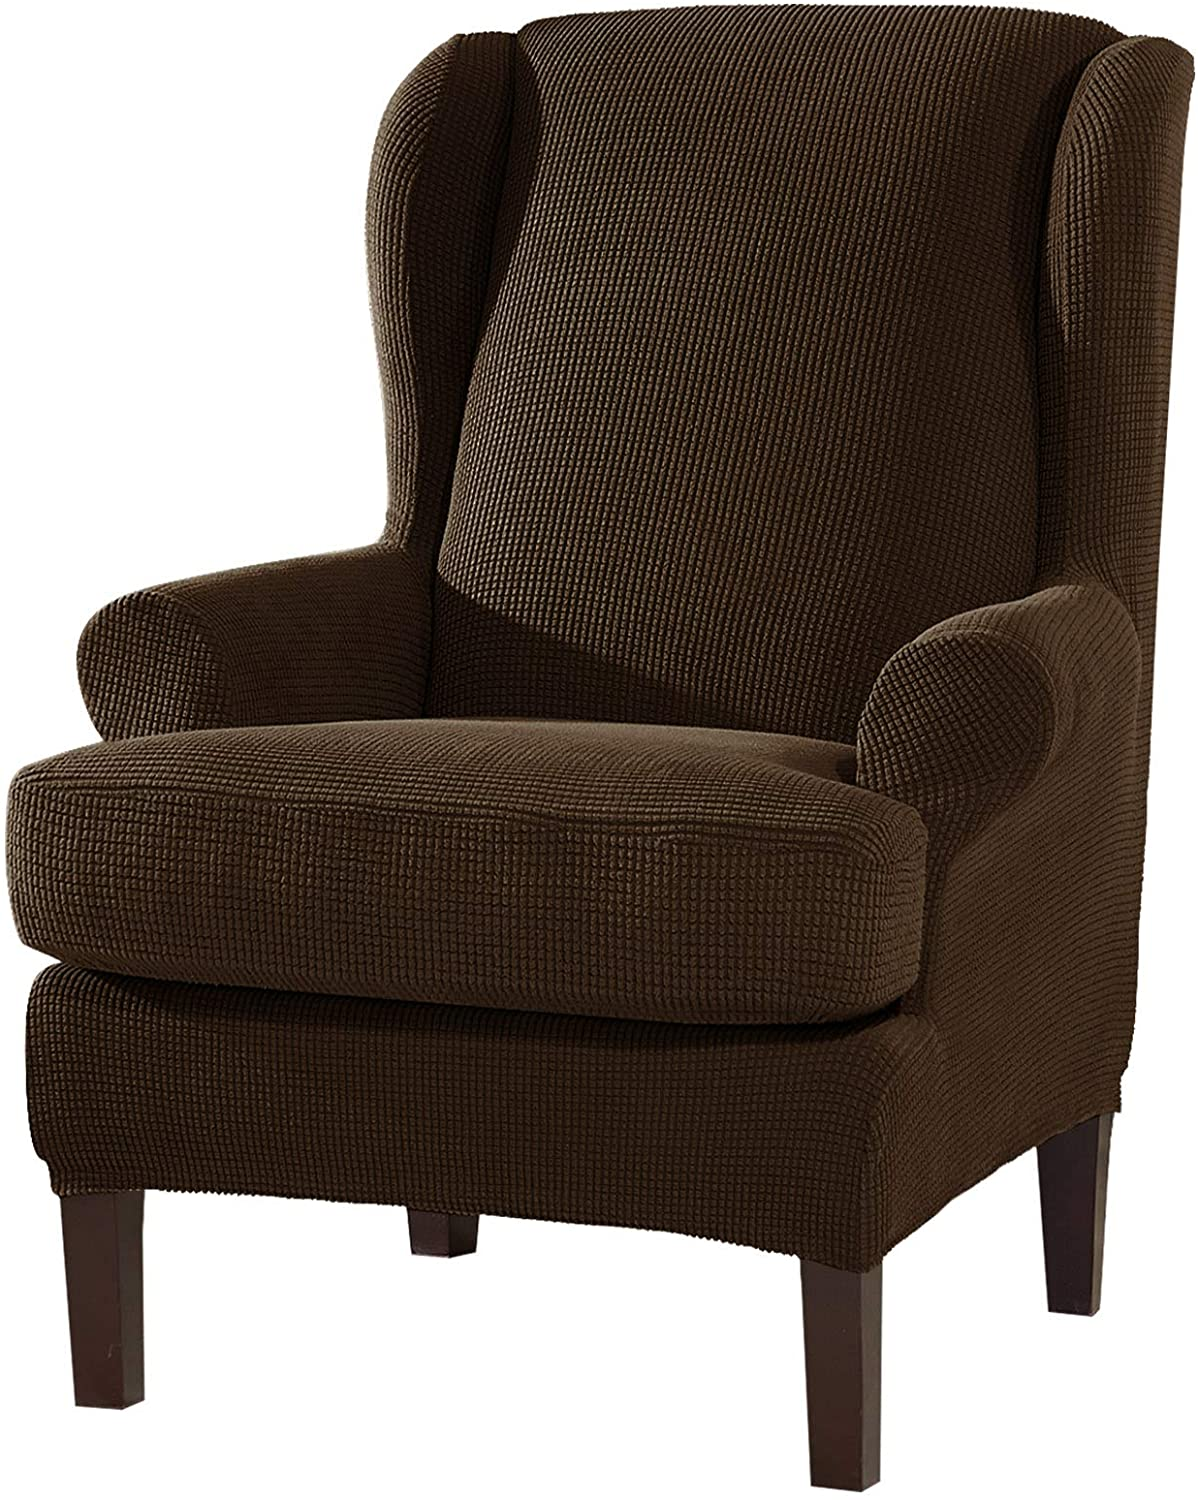 Soft Stretchy Wingback Chair Slipcover Furniture Cover Protector 2Piece